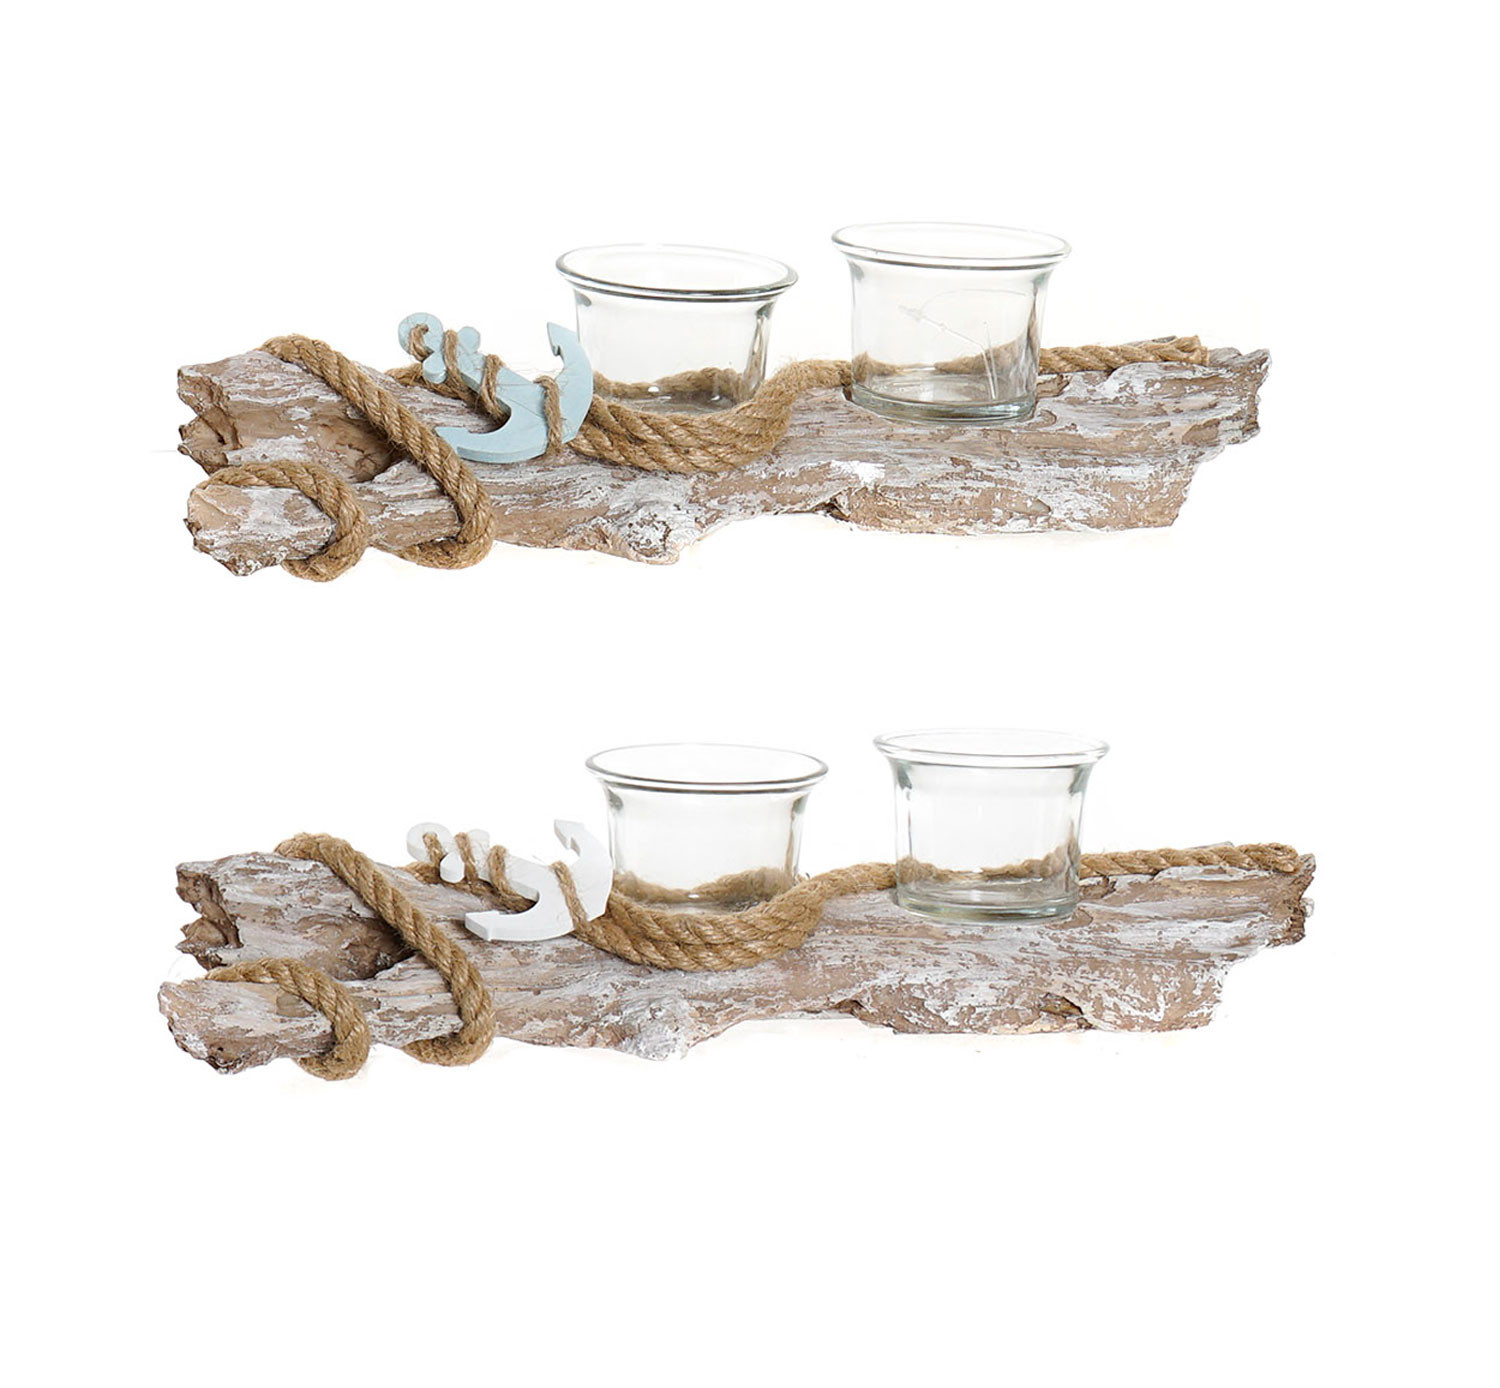 Metal holder Decorated with design of Trunk made of Resin and Glass for 2 Candles 31,5x8x7,5 cm